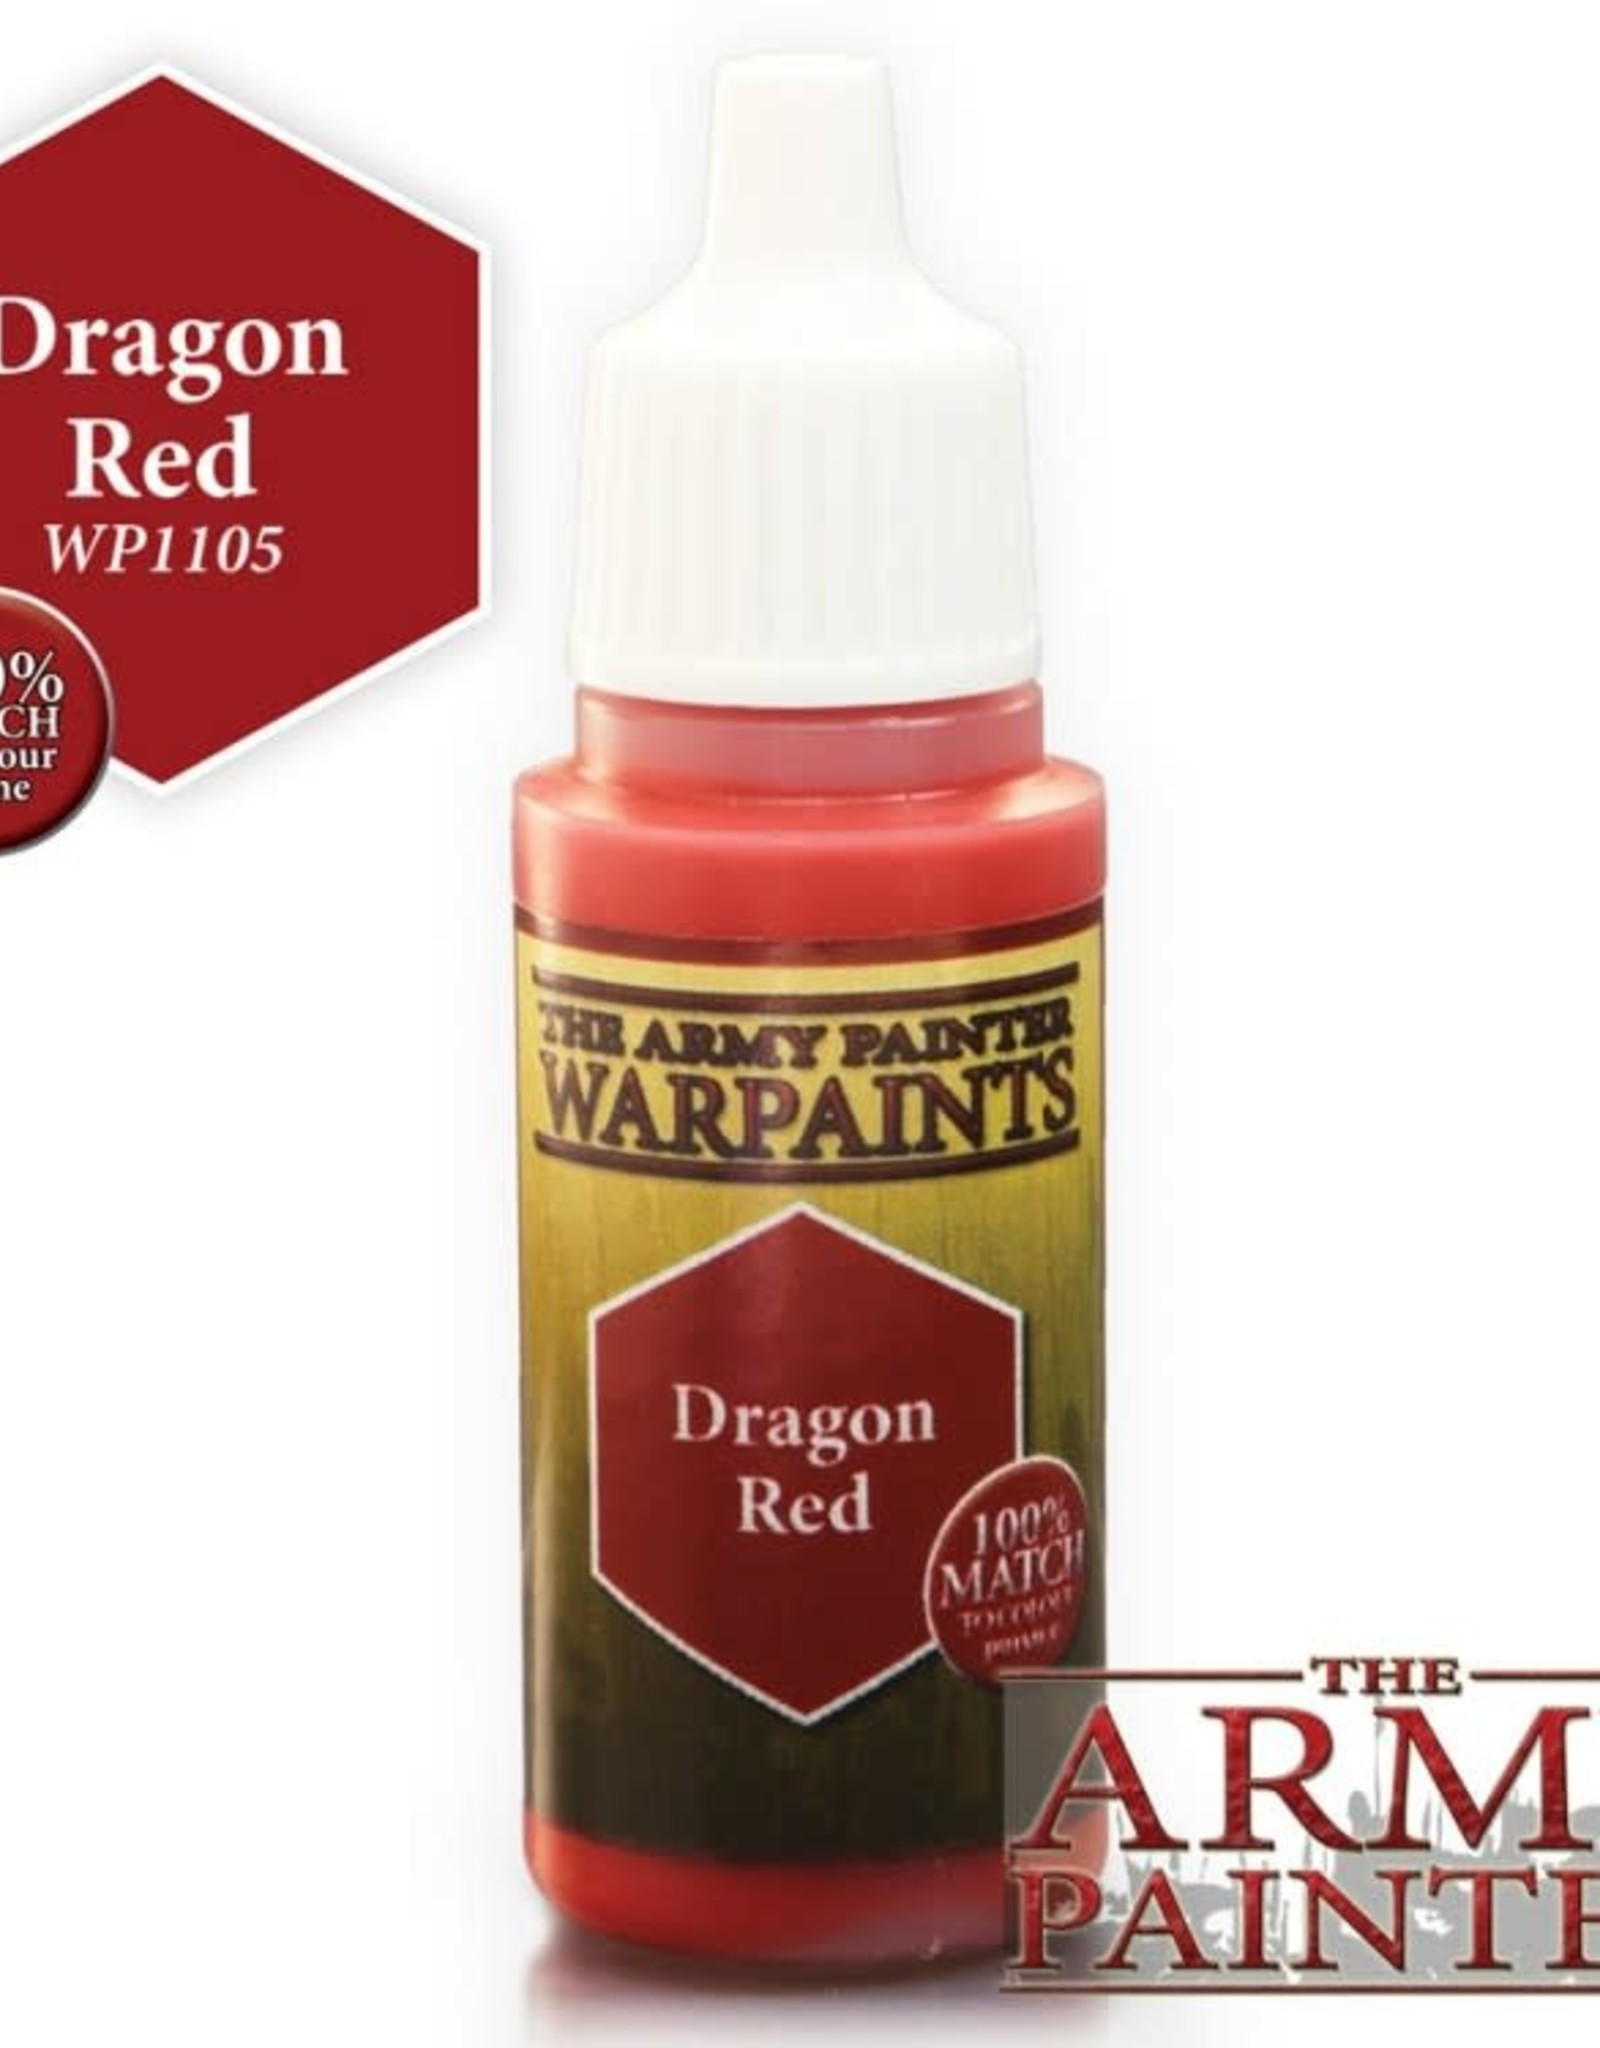 The Army Painter Warpaints - Dragon Red